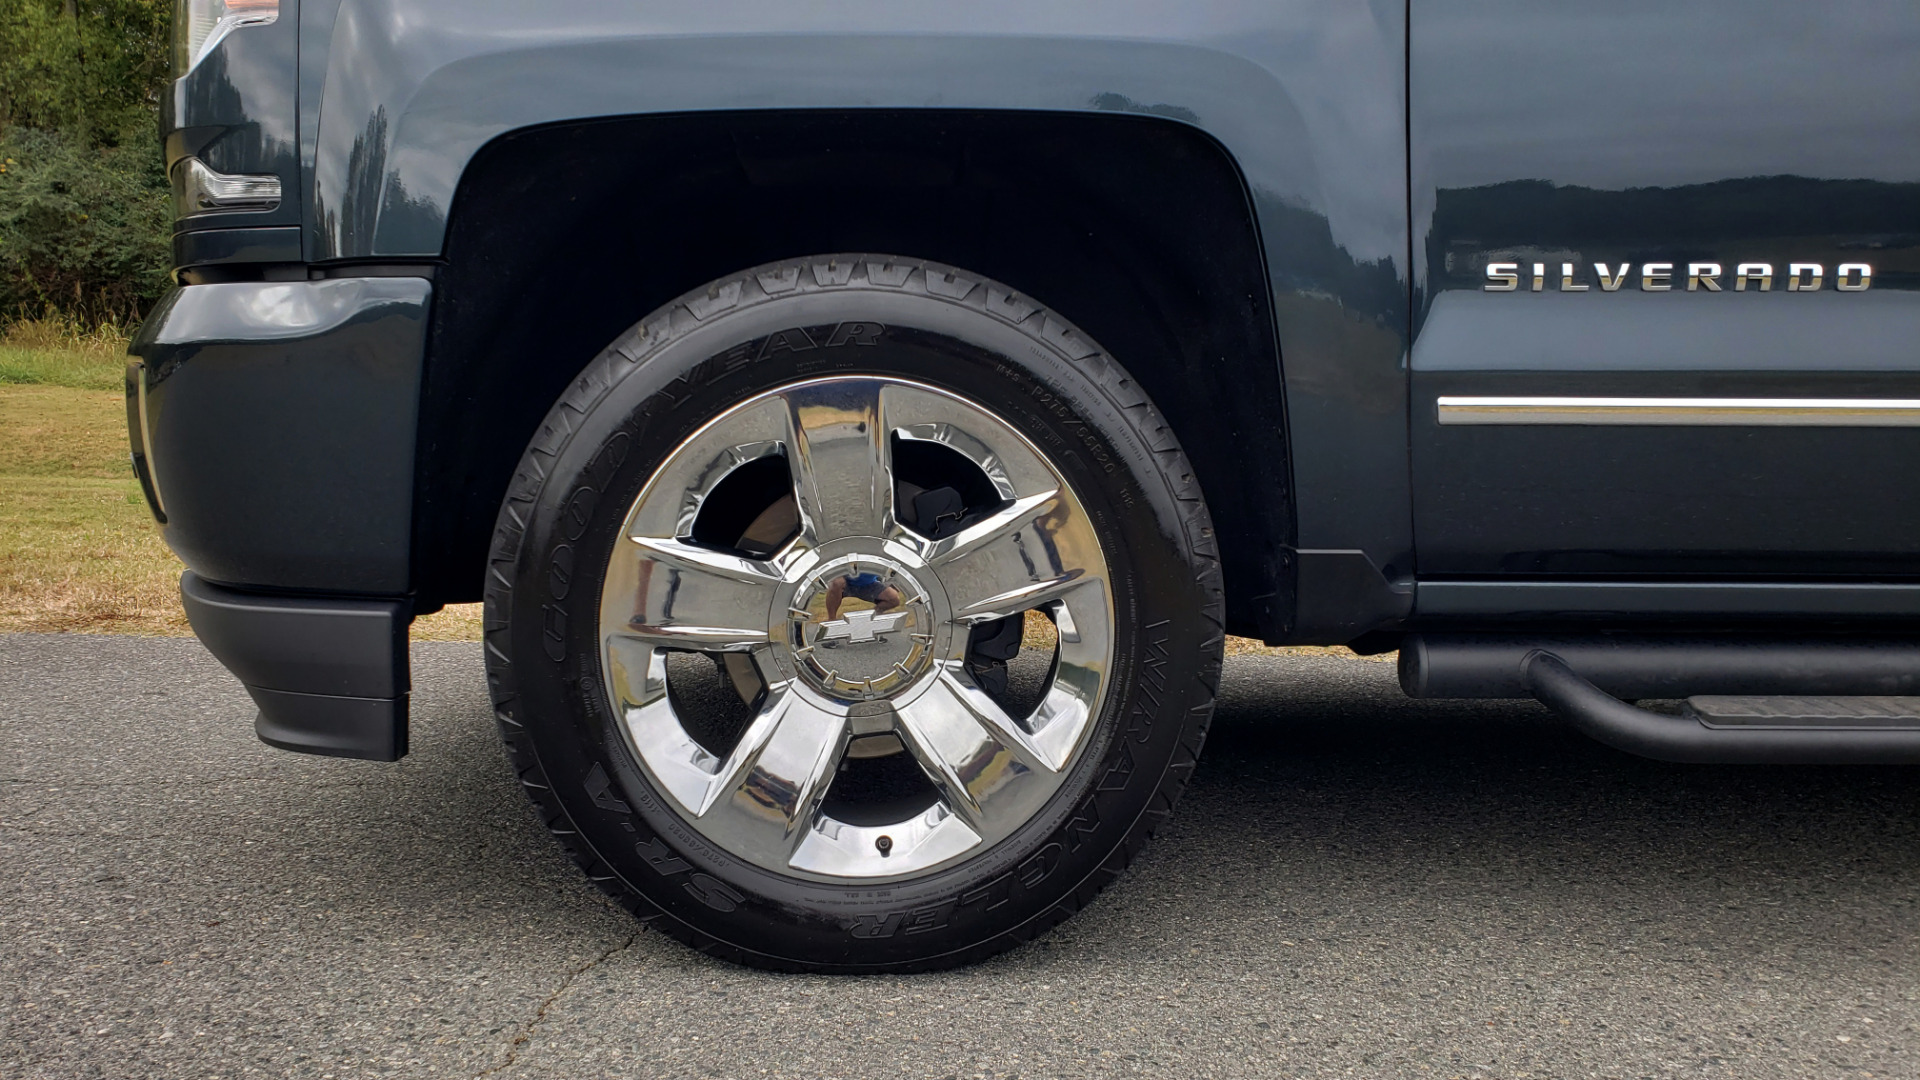 Used 2017 Chevrolet SILVERADO 1500 LTZ 4WD / NAV / BOSE / LEATHER / CAMERA / LOADED for sale Sold at Formula Imports in Charlotte NC 28227 15